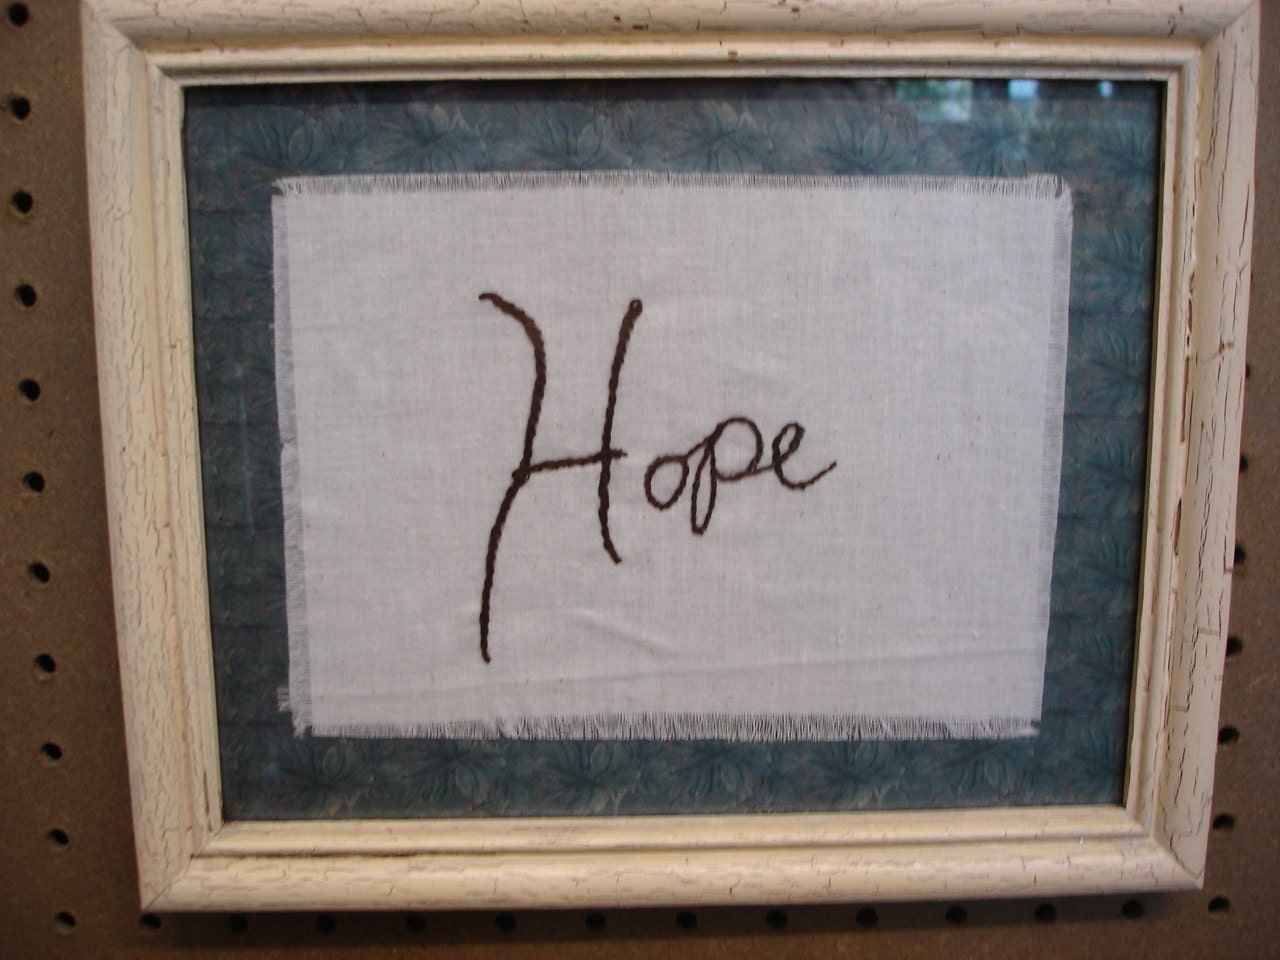 Inspiring,Phrases,Hope,Hand,Stitched,Wall,Decor,Framed,Housewares,Home_Decor,home_decor,phrase,hand_stitch,inspiring,inspire,frame,framed_phrase,for_your_home,wall_decor,gift,houseware,reclaimed,wood,paper,fabric